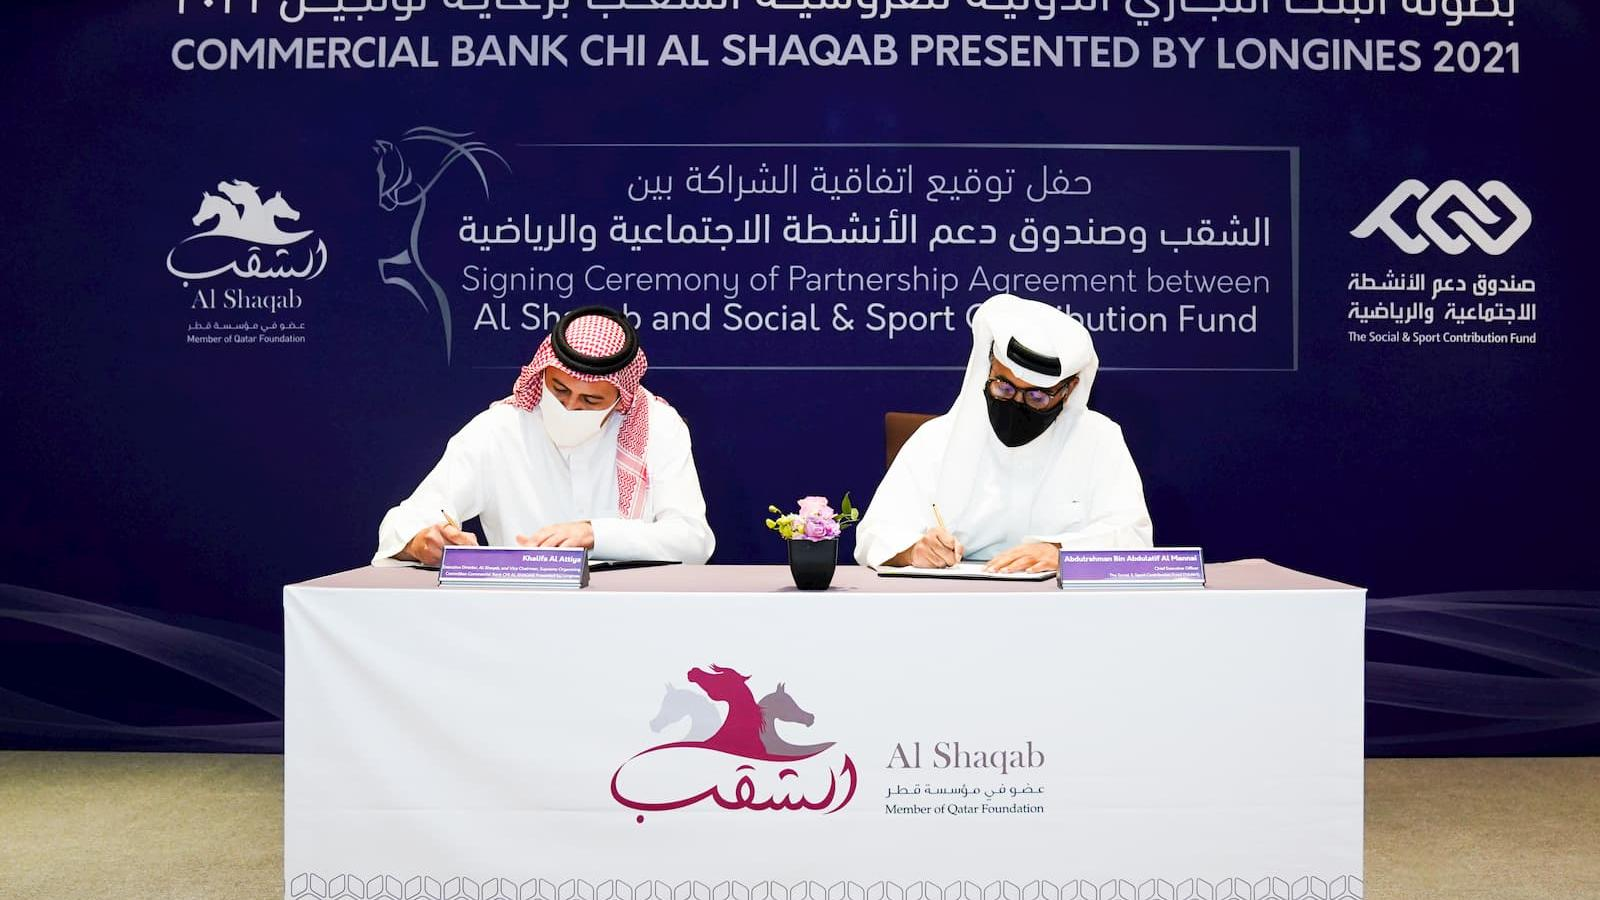 Daam named Supporter of Commercial Bank CHI AL SHAQAB presented by Longines